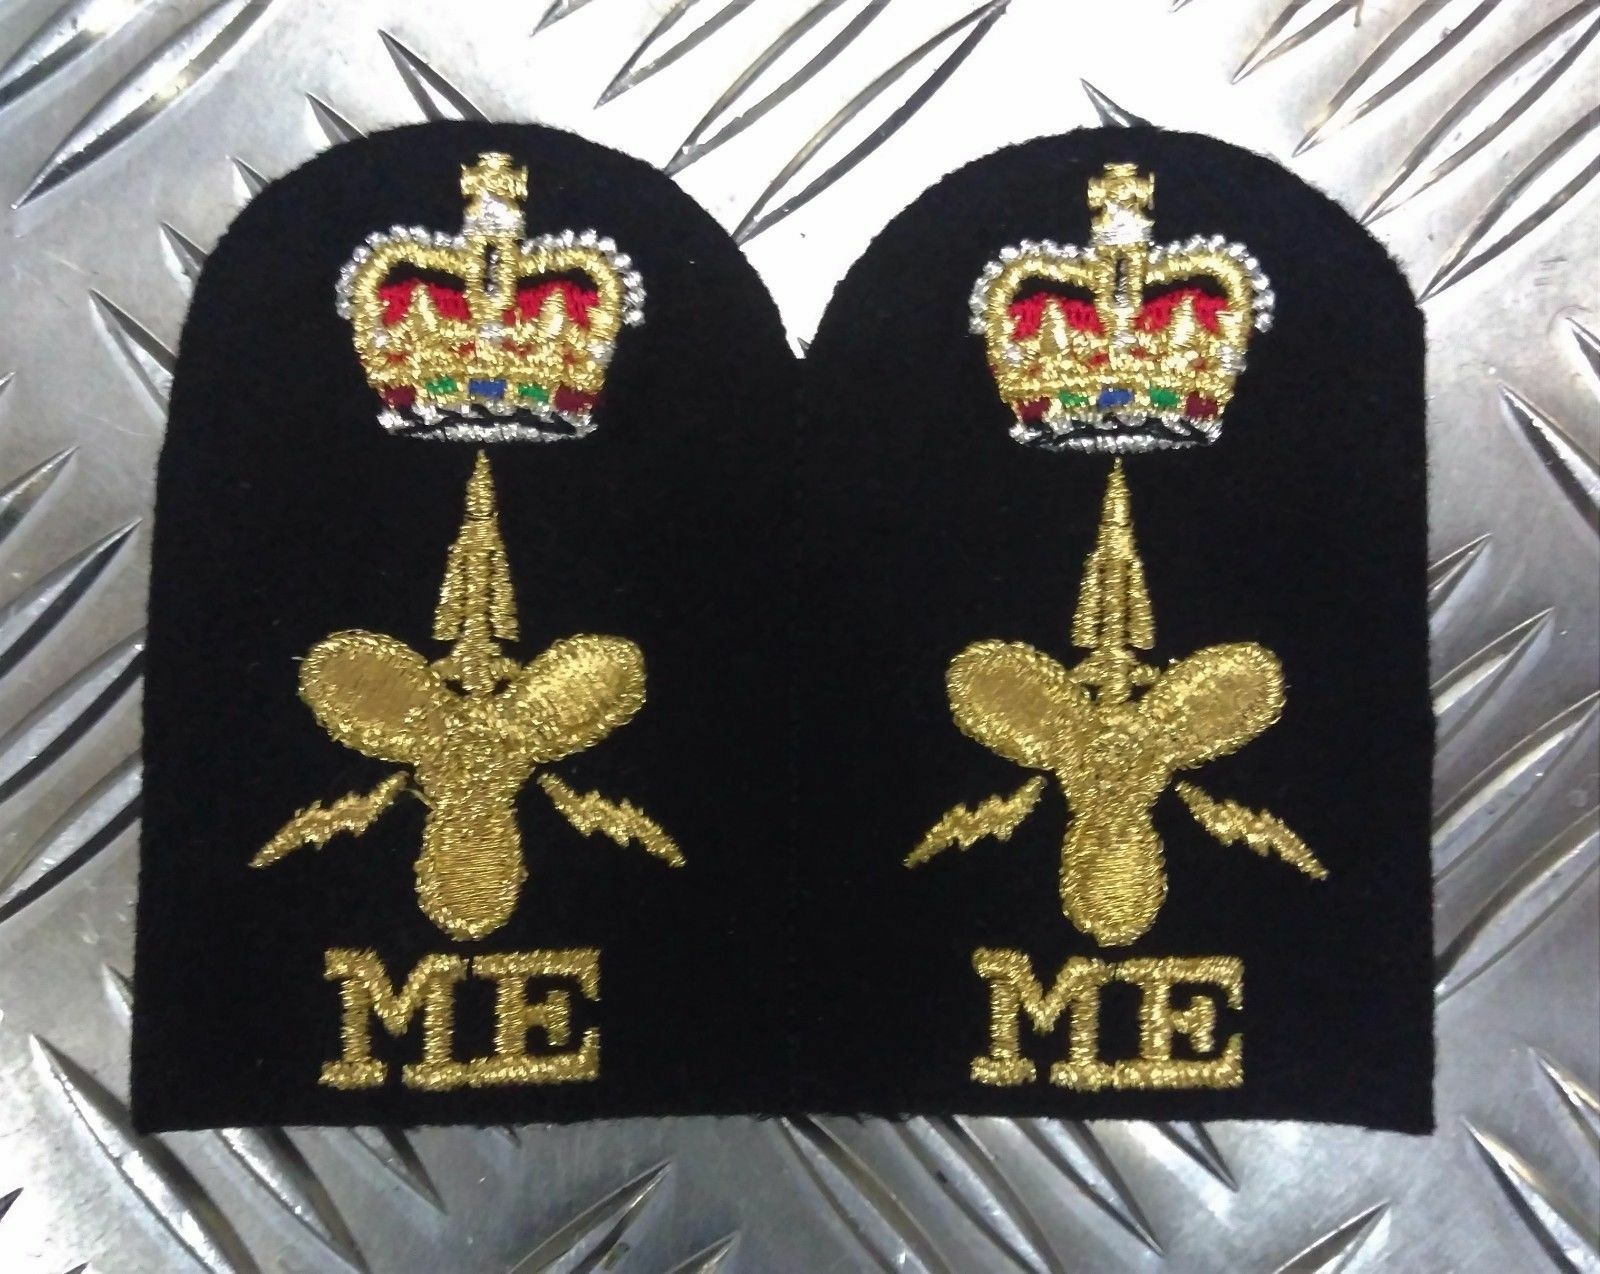 Authentique Royal Navy Brodé Assorti Branche Qualification Qualification Qualification Badges Divers Neuf a6774d